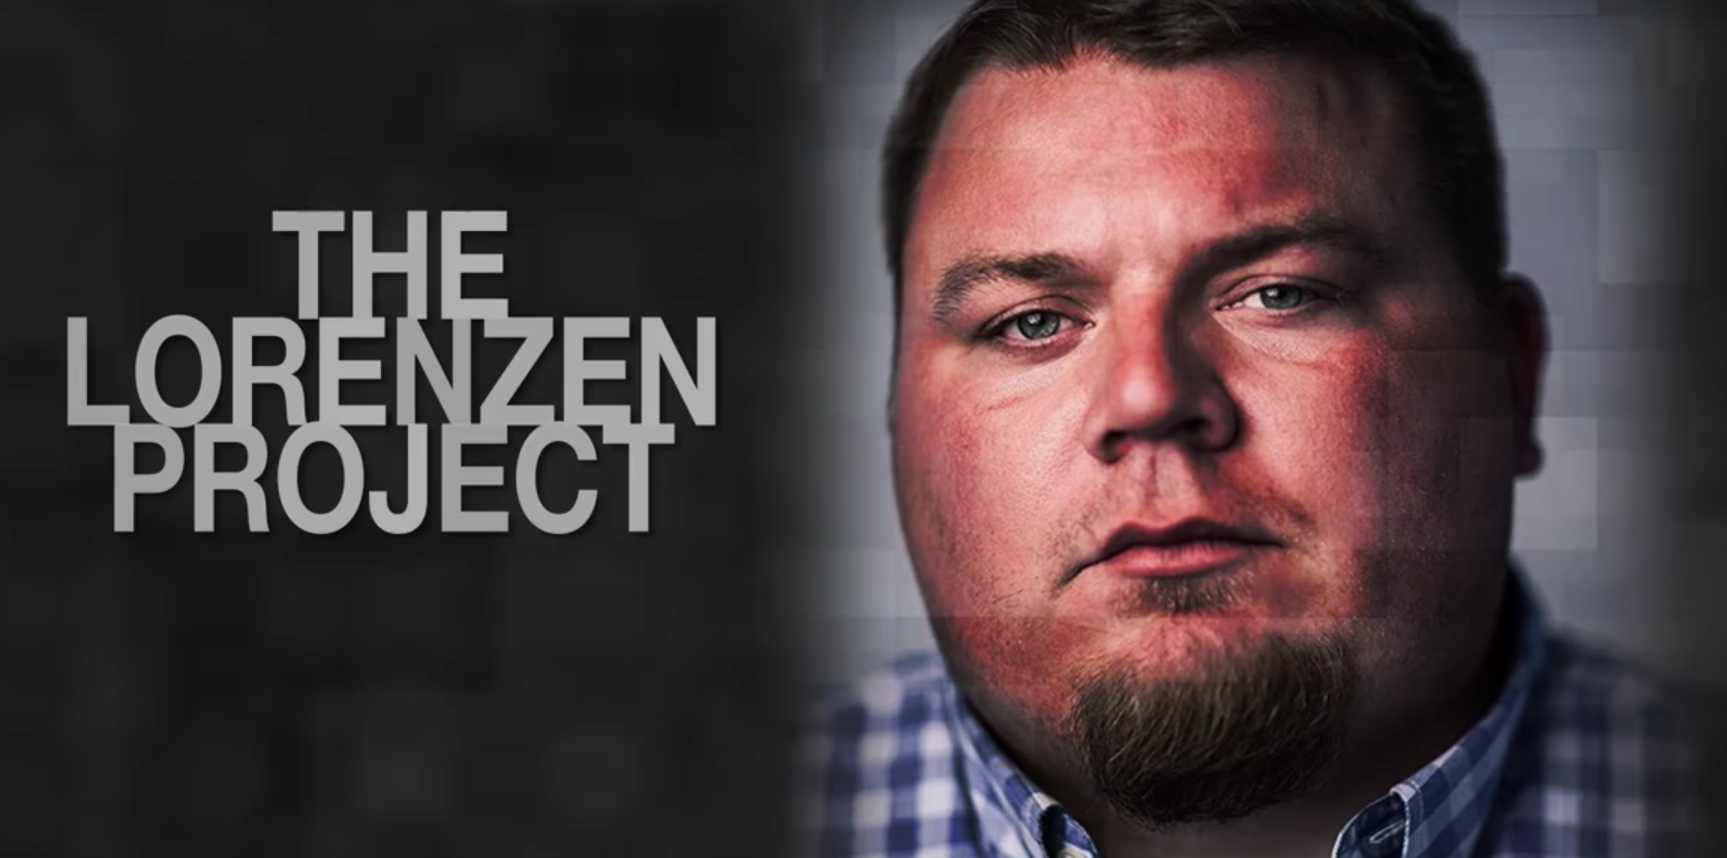 Former QB Jared Lorenzen documenting weight loss journey after reaching 500 pounds